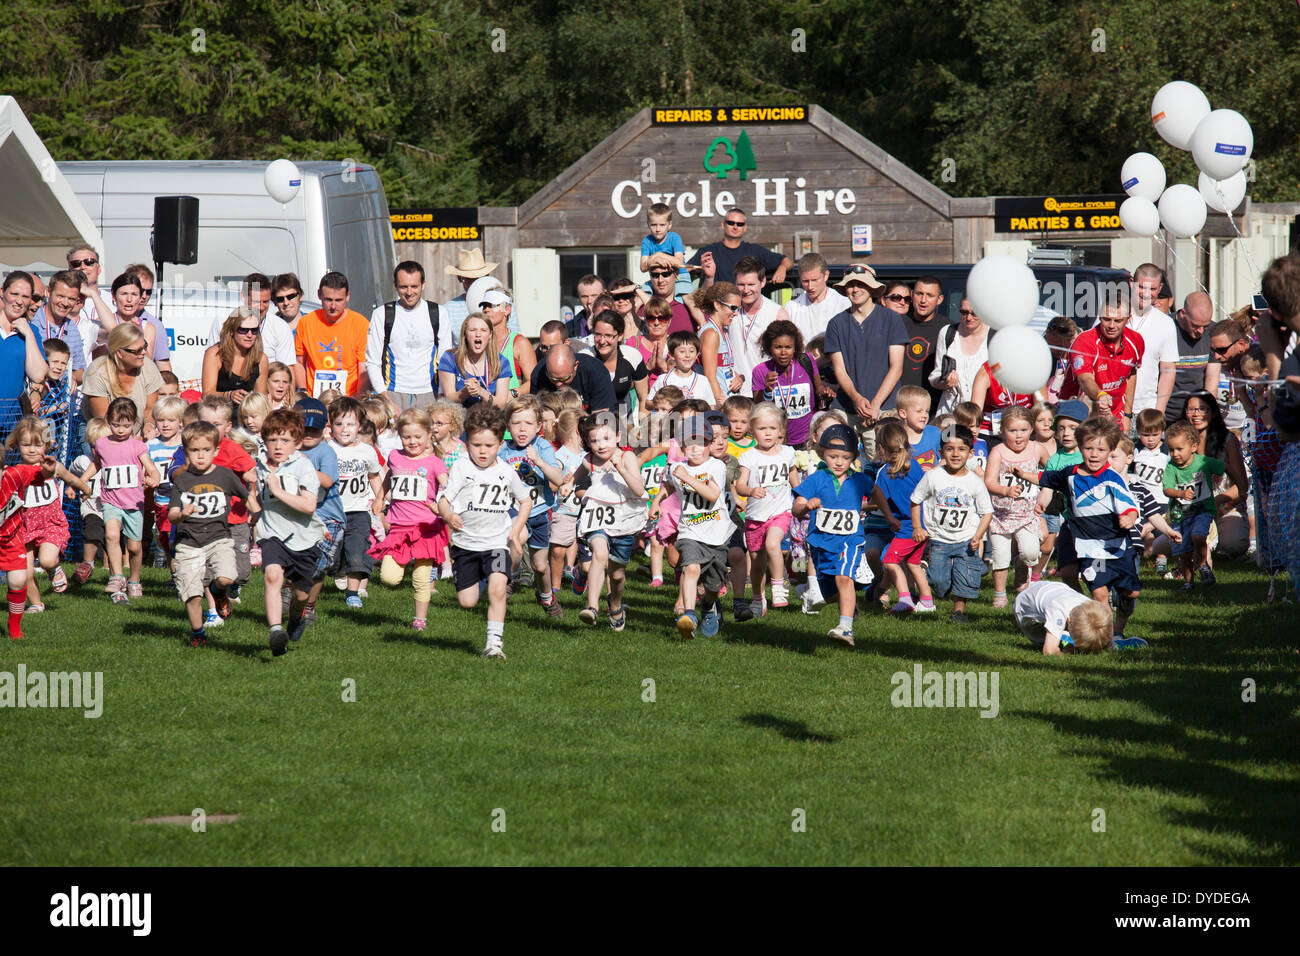 Pre school children taking part in a 60m dash race with parents watching at Alice Holt Forest. - Stock Image